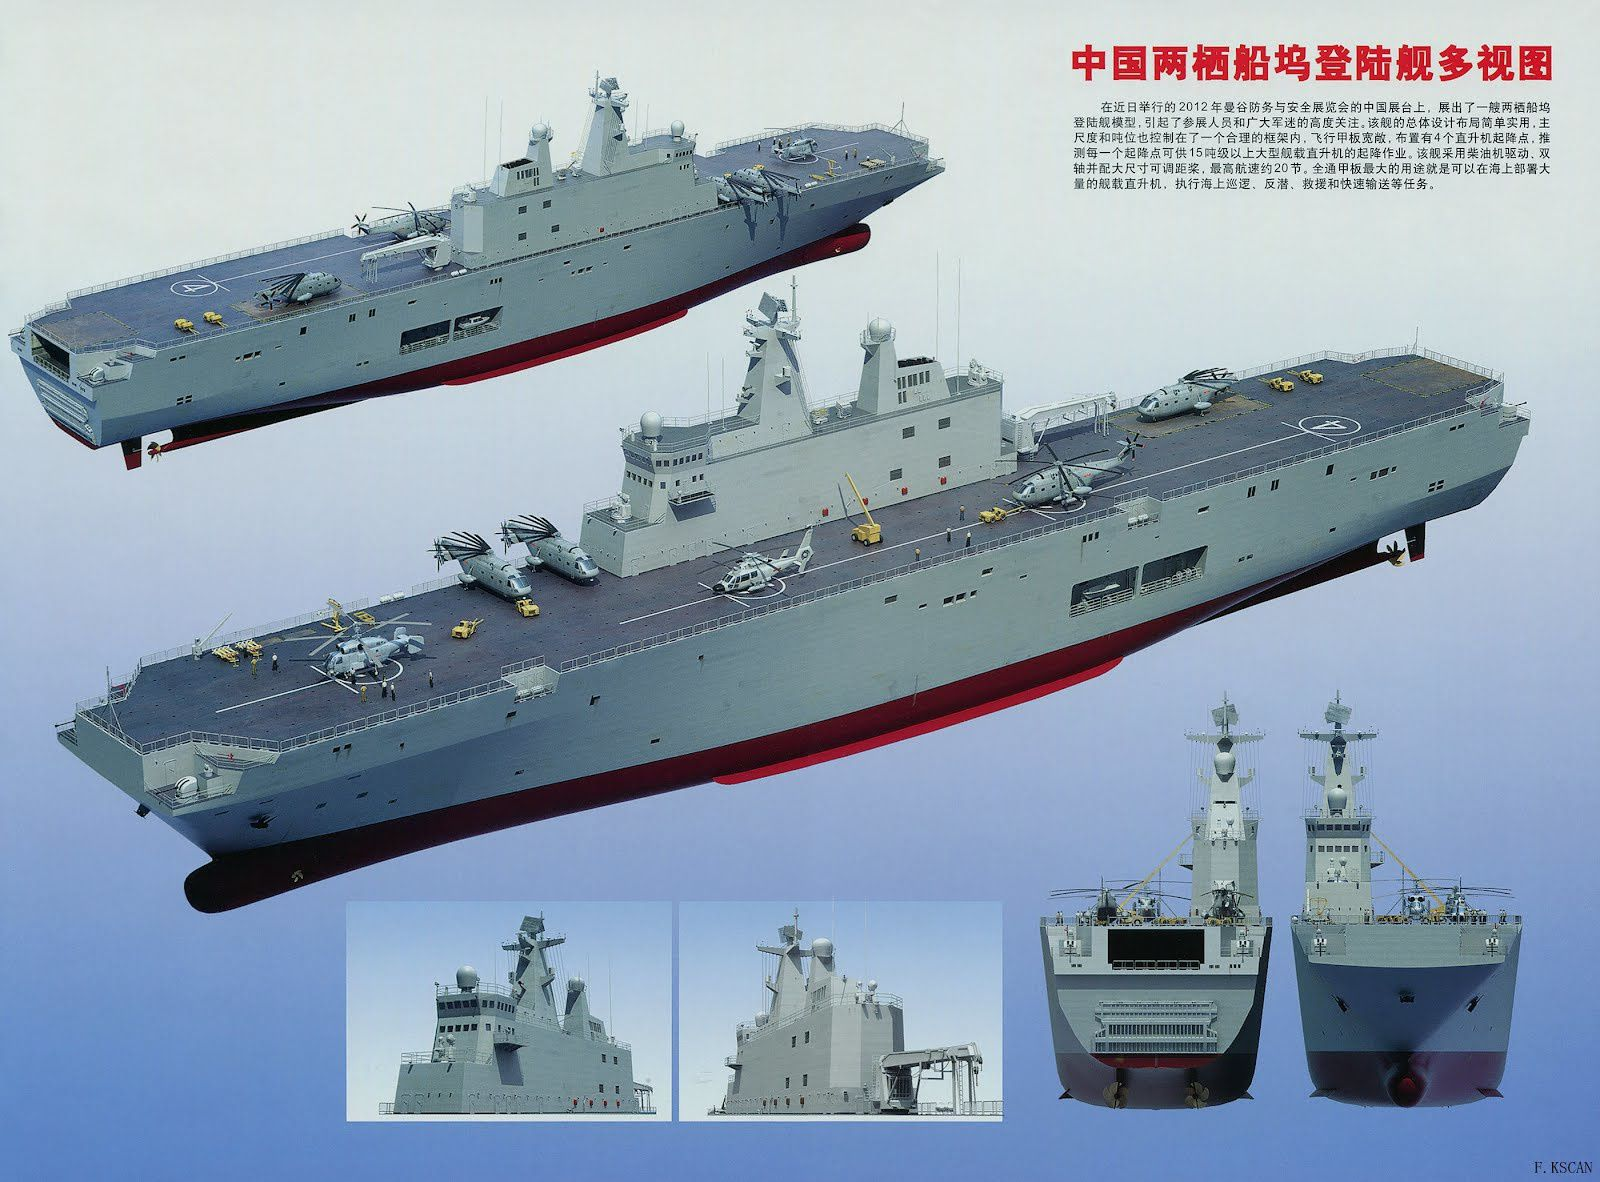 modern helicopter design with Article New Chinese Ship Lhd Causes Alarm 114679777 on Fantasy Cold War Jet Fighter West German 428063454 additionally 3d Printed Aer9 Laser Rifle also 181 as well Concept Robotic Machines By Daniel Xiao moreover Tiara Thursday Queen Alias Cartier.